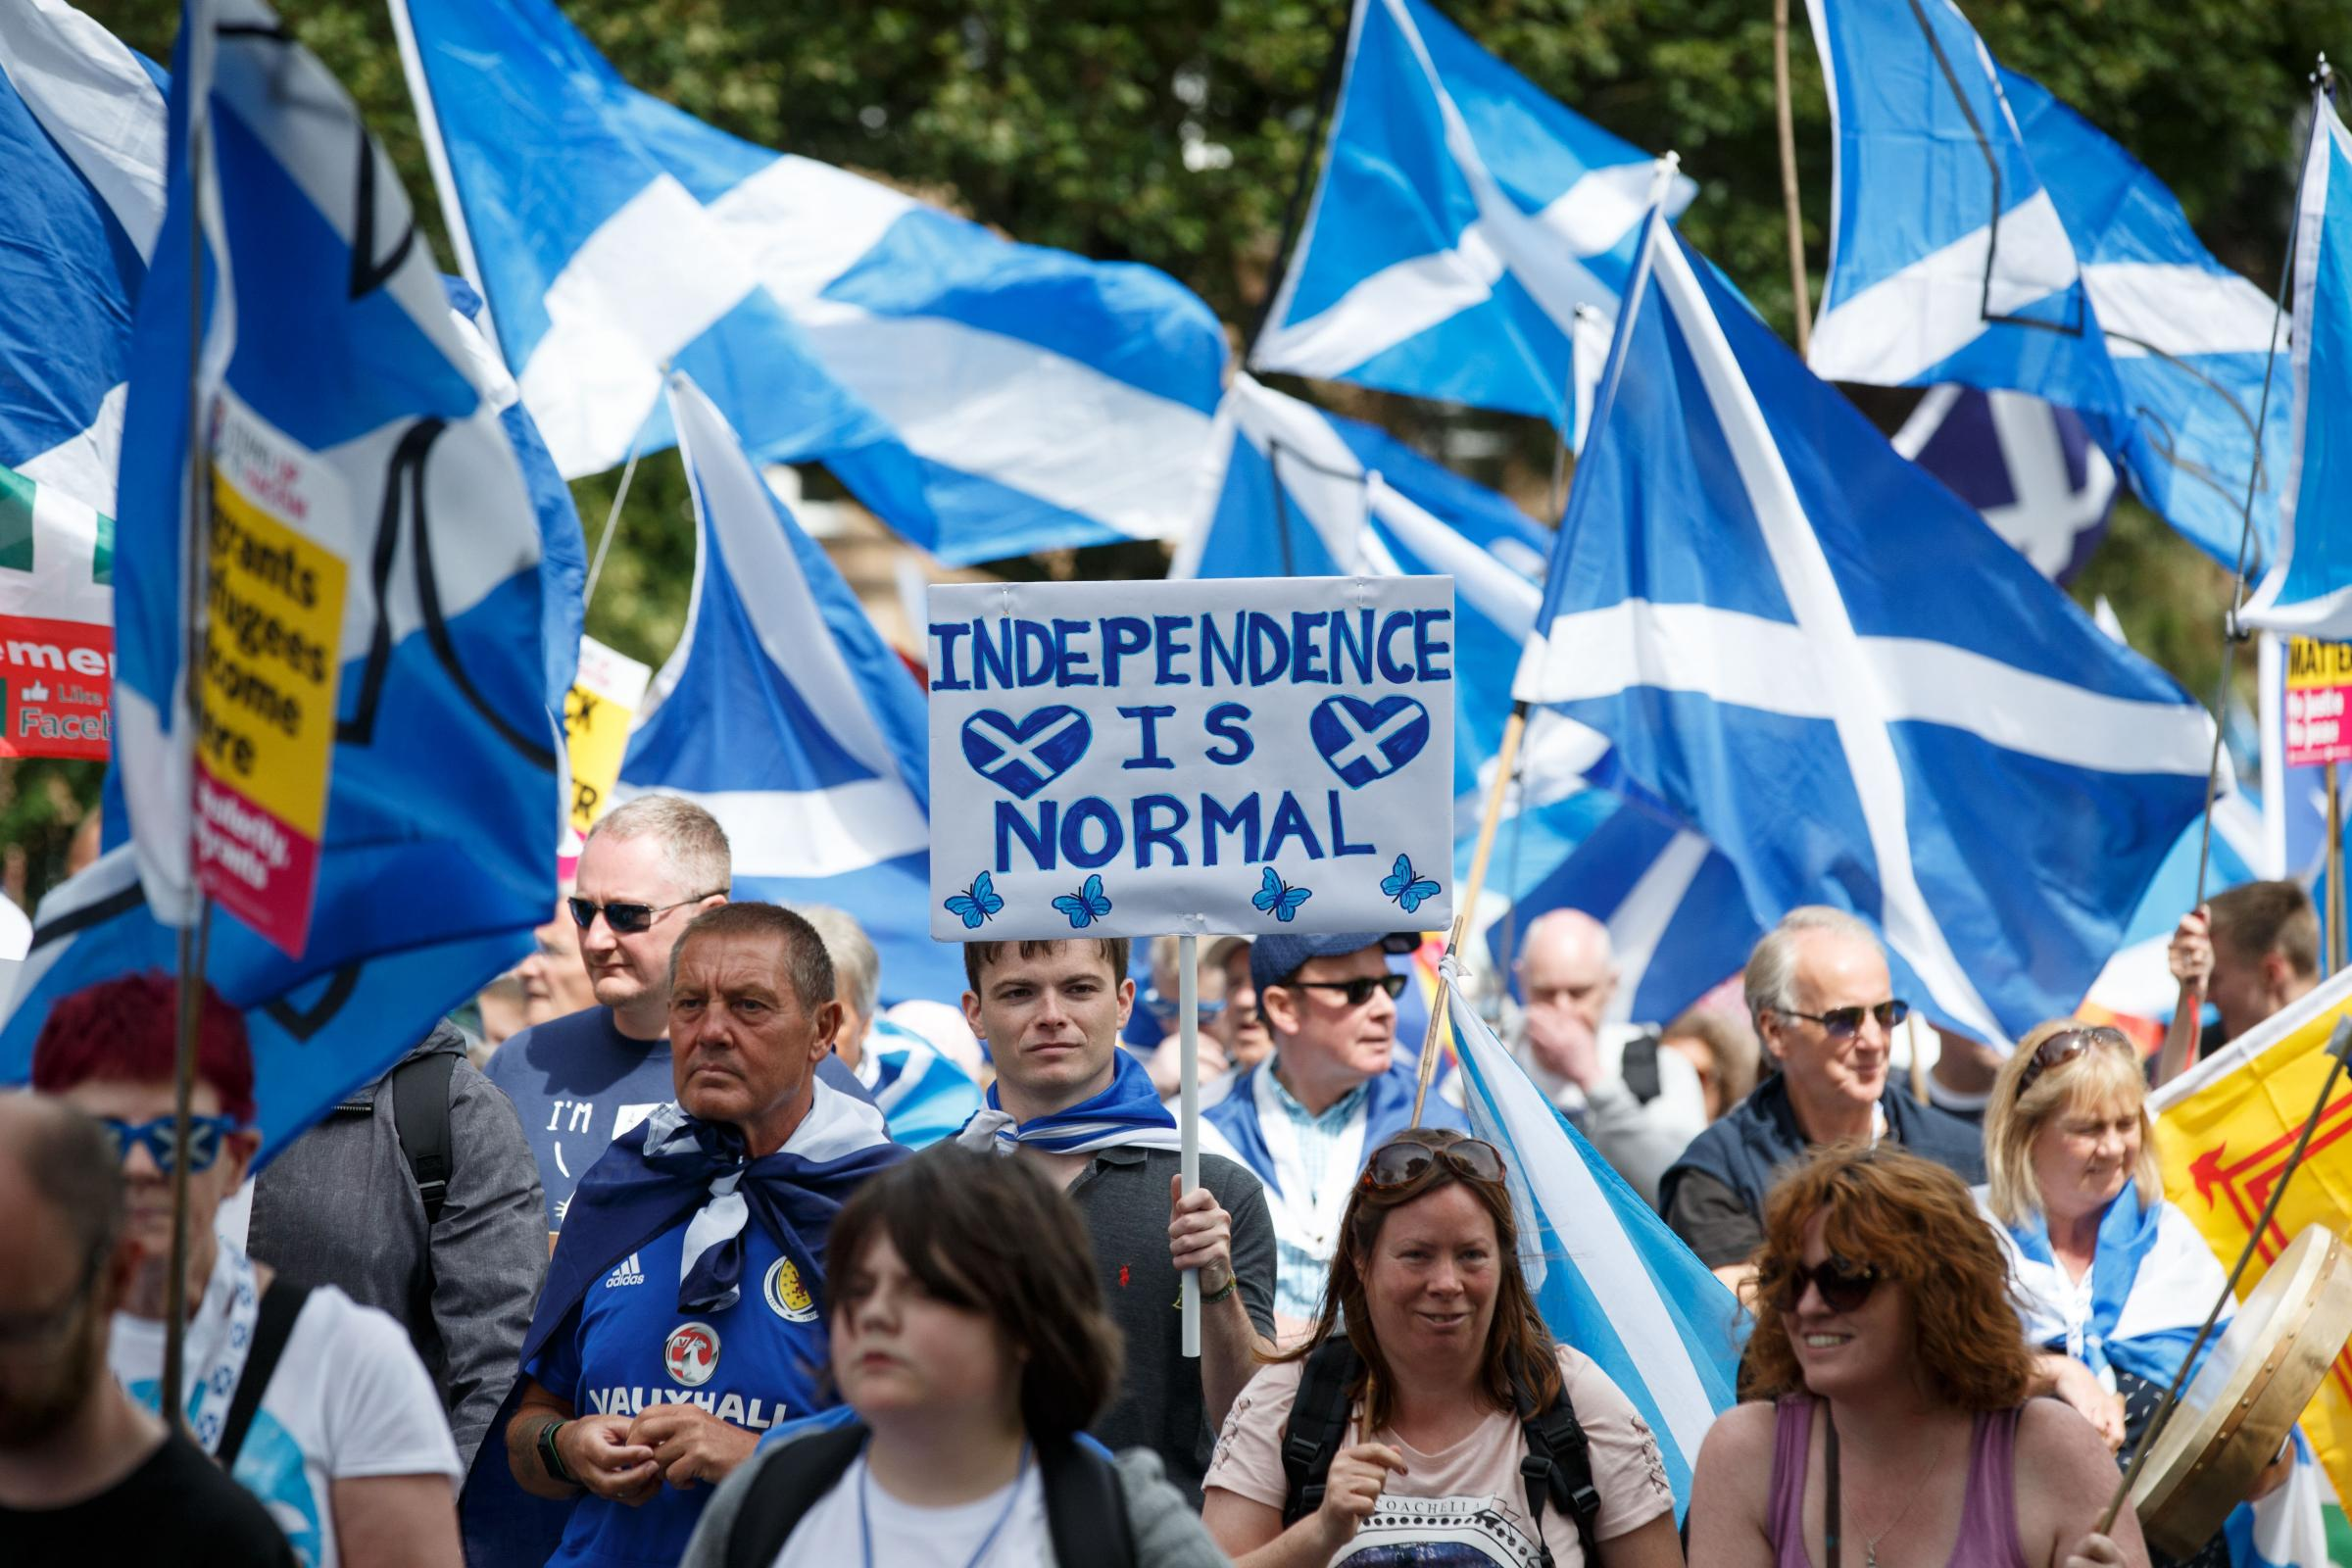 Brexit will be a burden – independence is essential